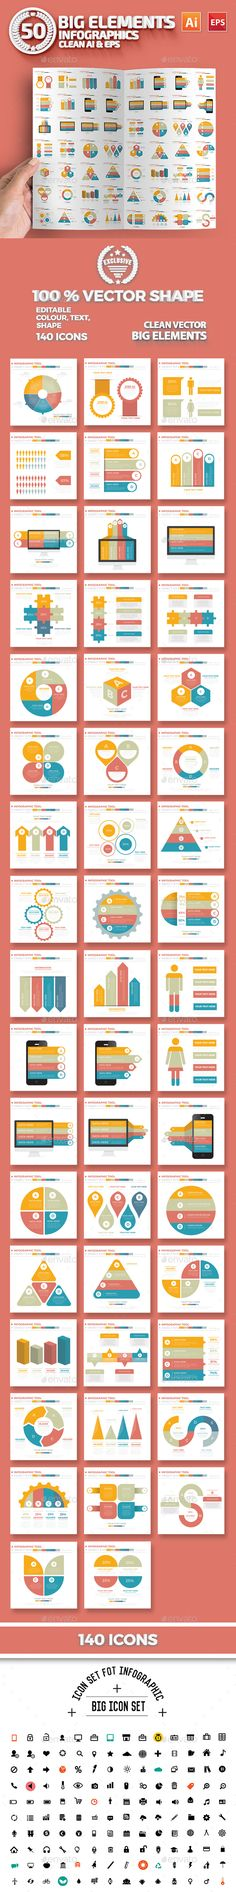 Infographic Tutorial infographic tutorial illustrator cs : Pinterest • The world's catalog of ideas